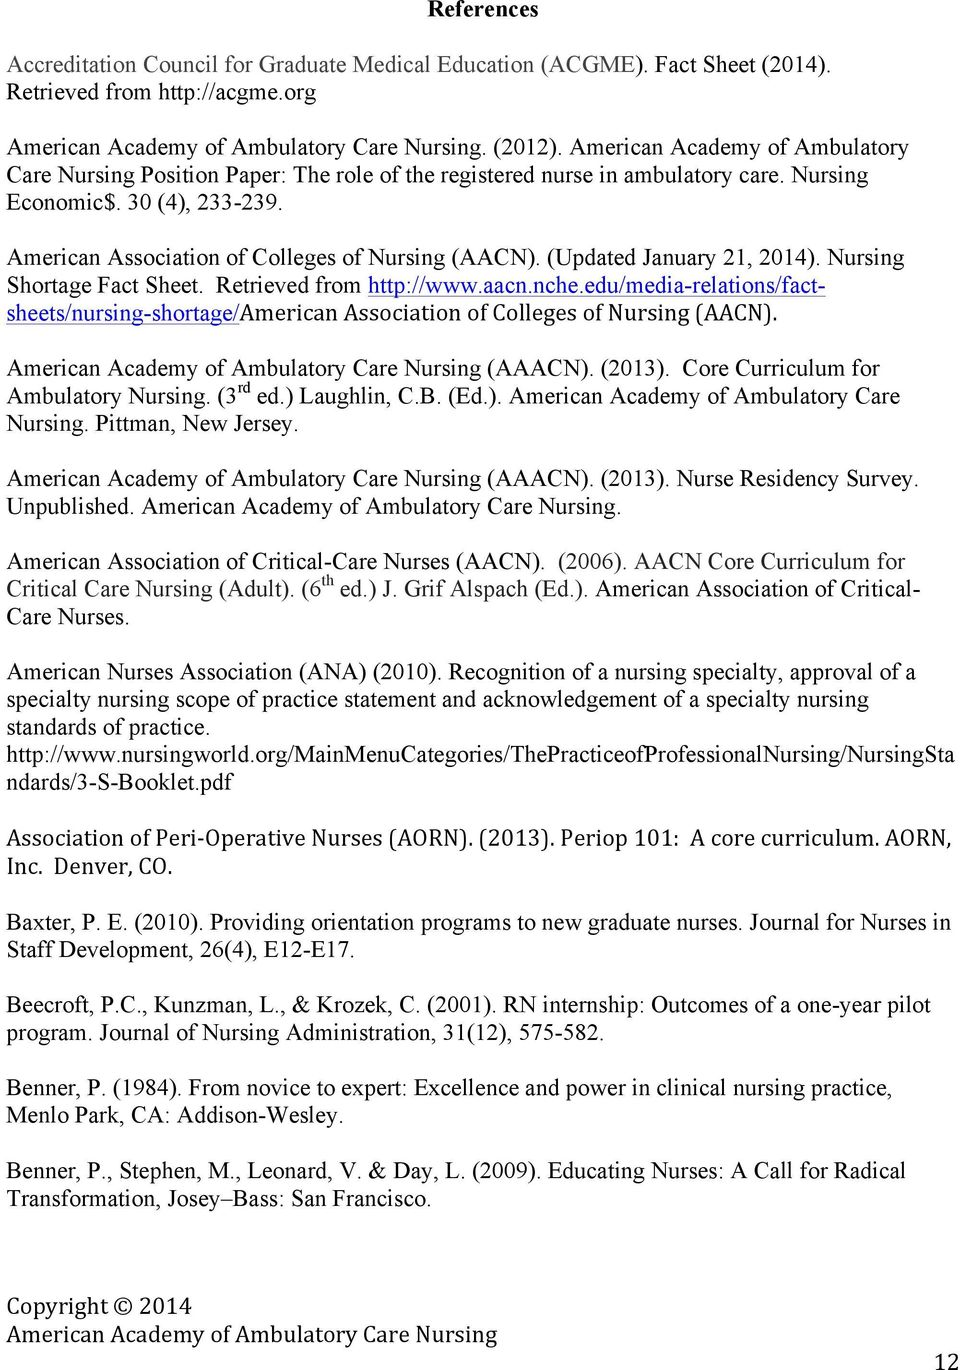 (Updated January 21, 2014). Nursing Shortage Fact Sheet. Retrieved from http://www.aacn.nche.edu/media-relations/factsheets/nursing-shortage/american Association of Colleges of Nursing (AACN).